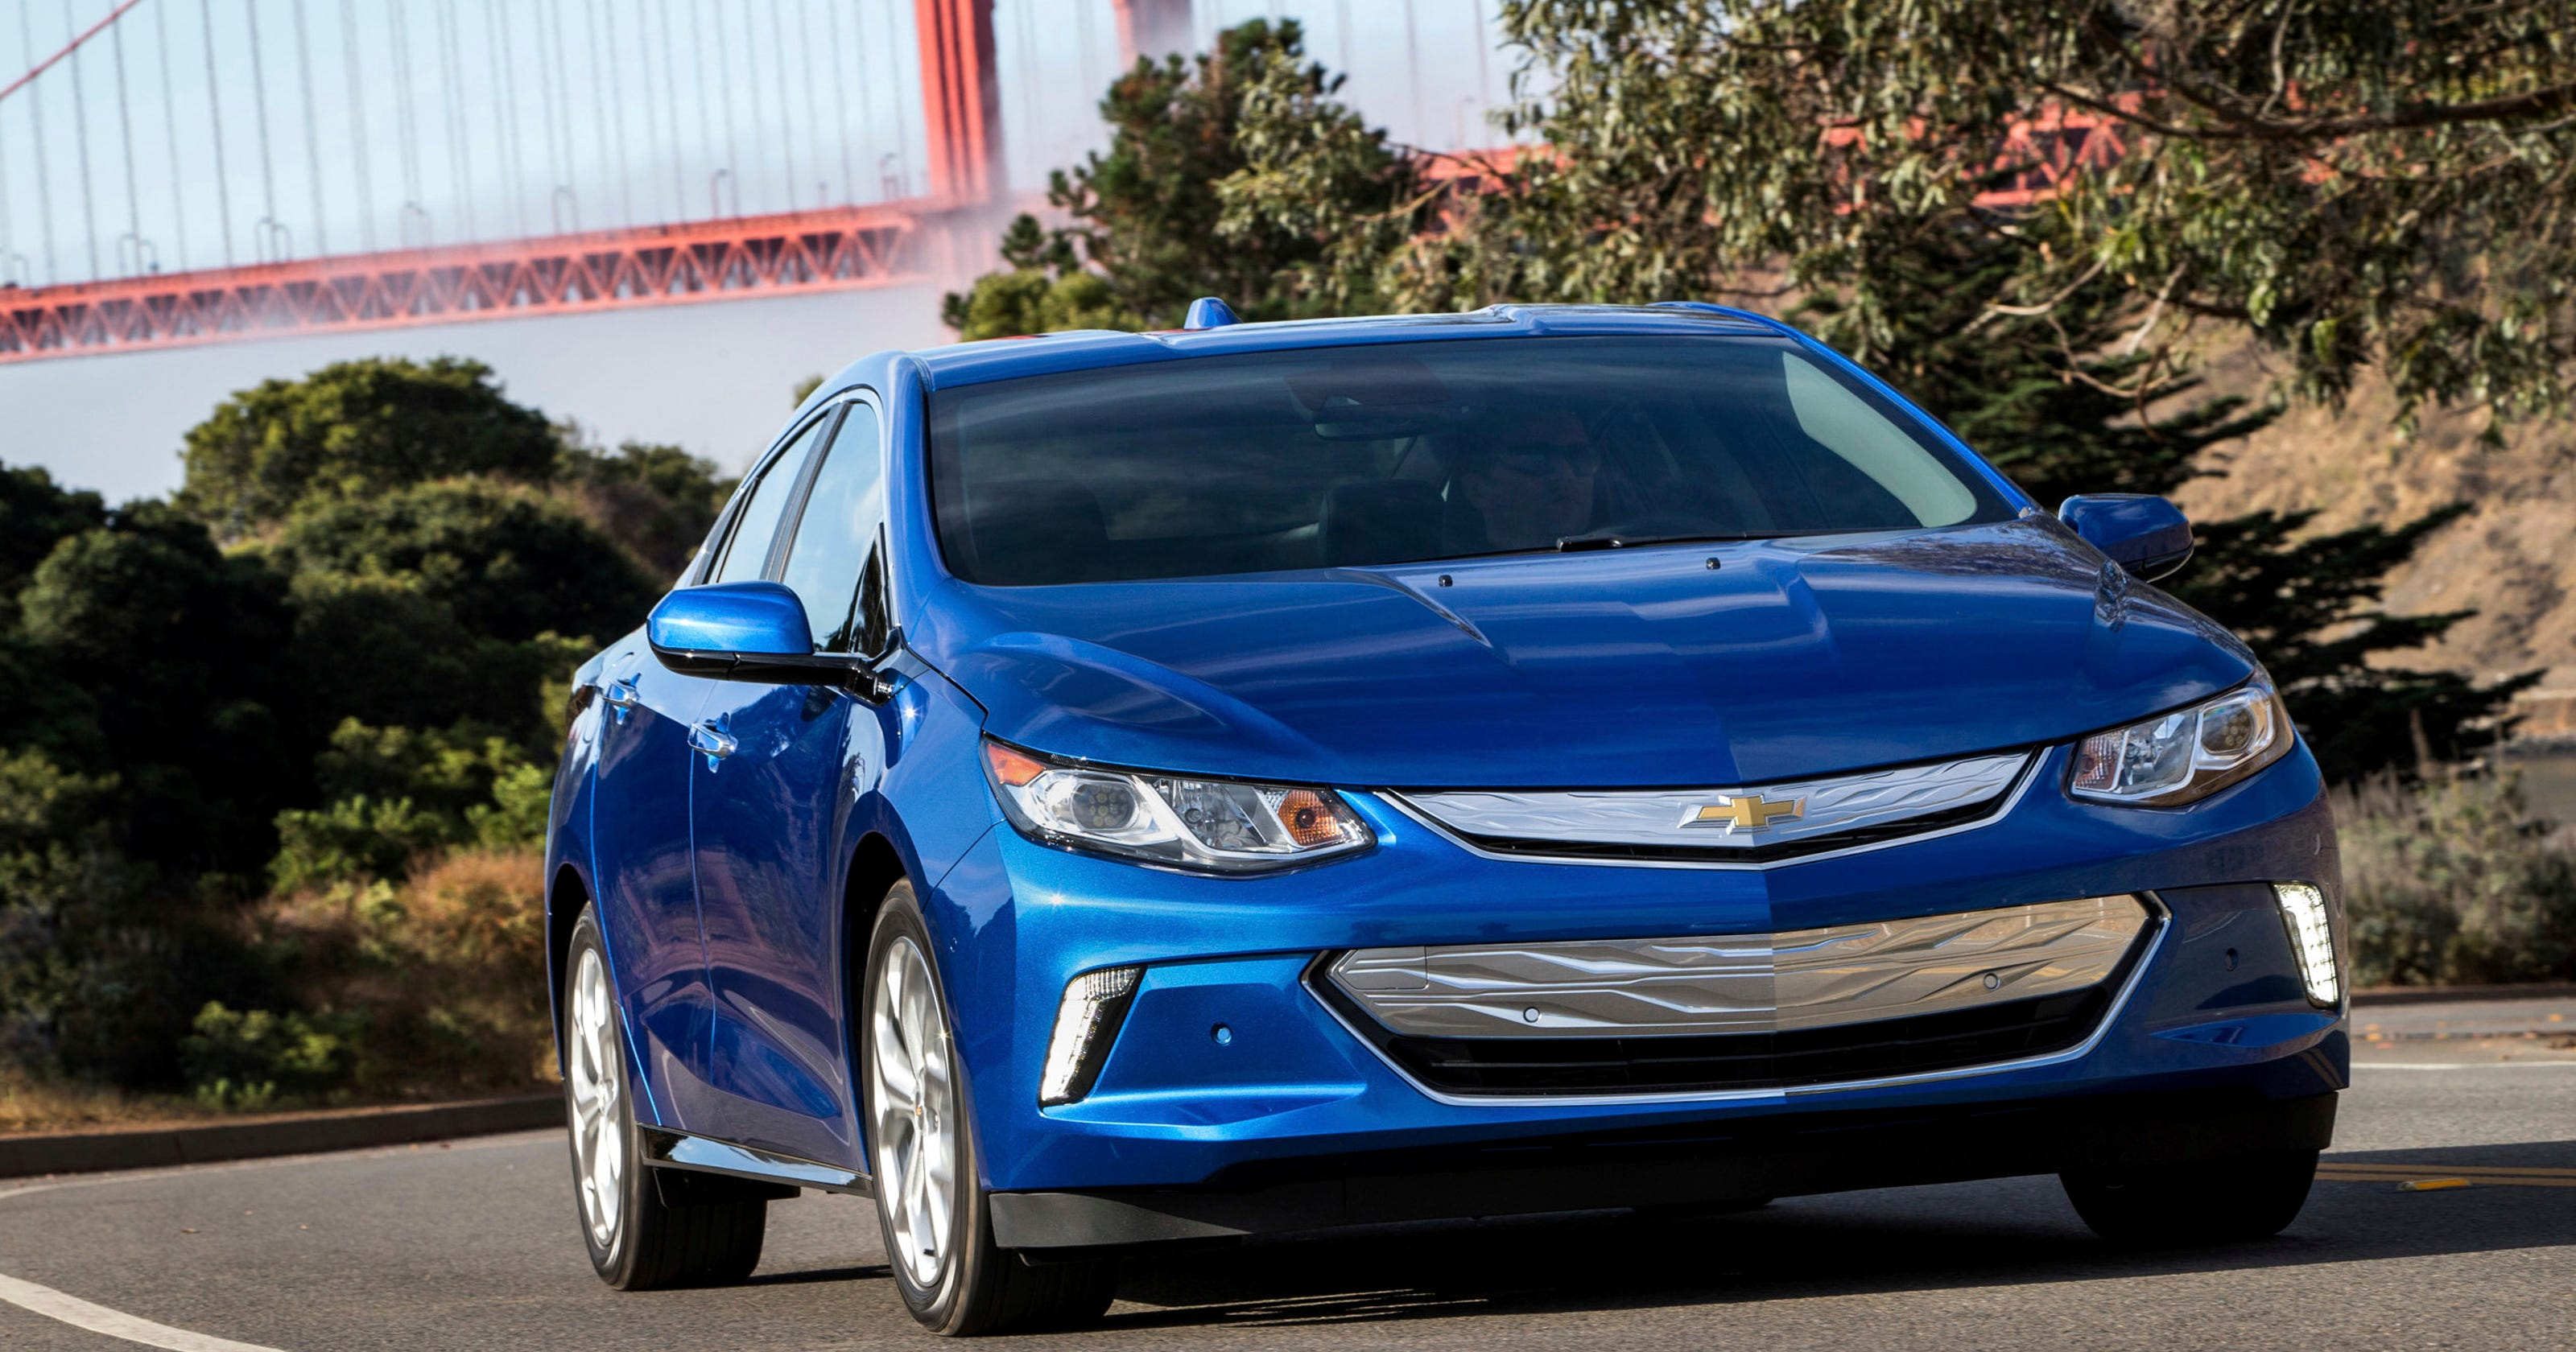 Gm To Kill Chevrolet Volt Cruze Impala As Americans Ditch Penger Cars